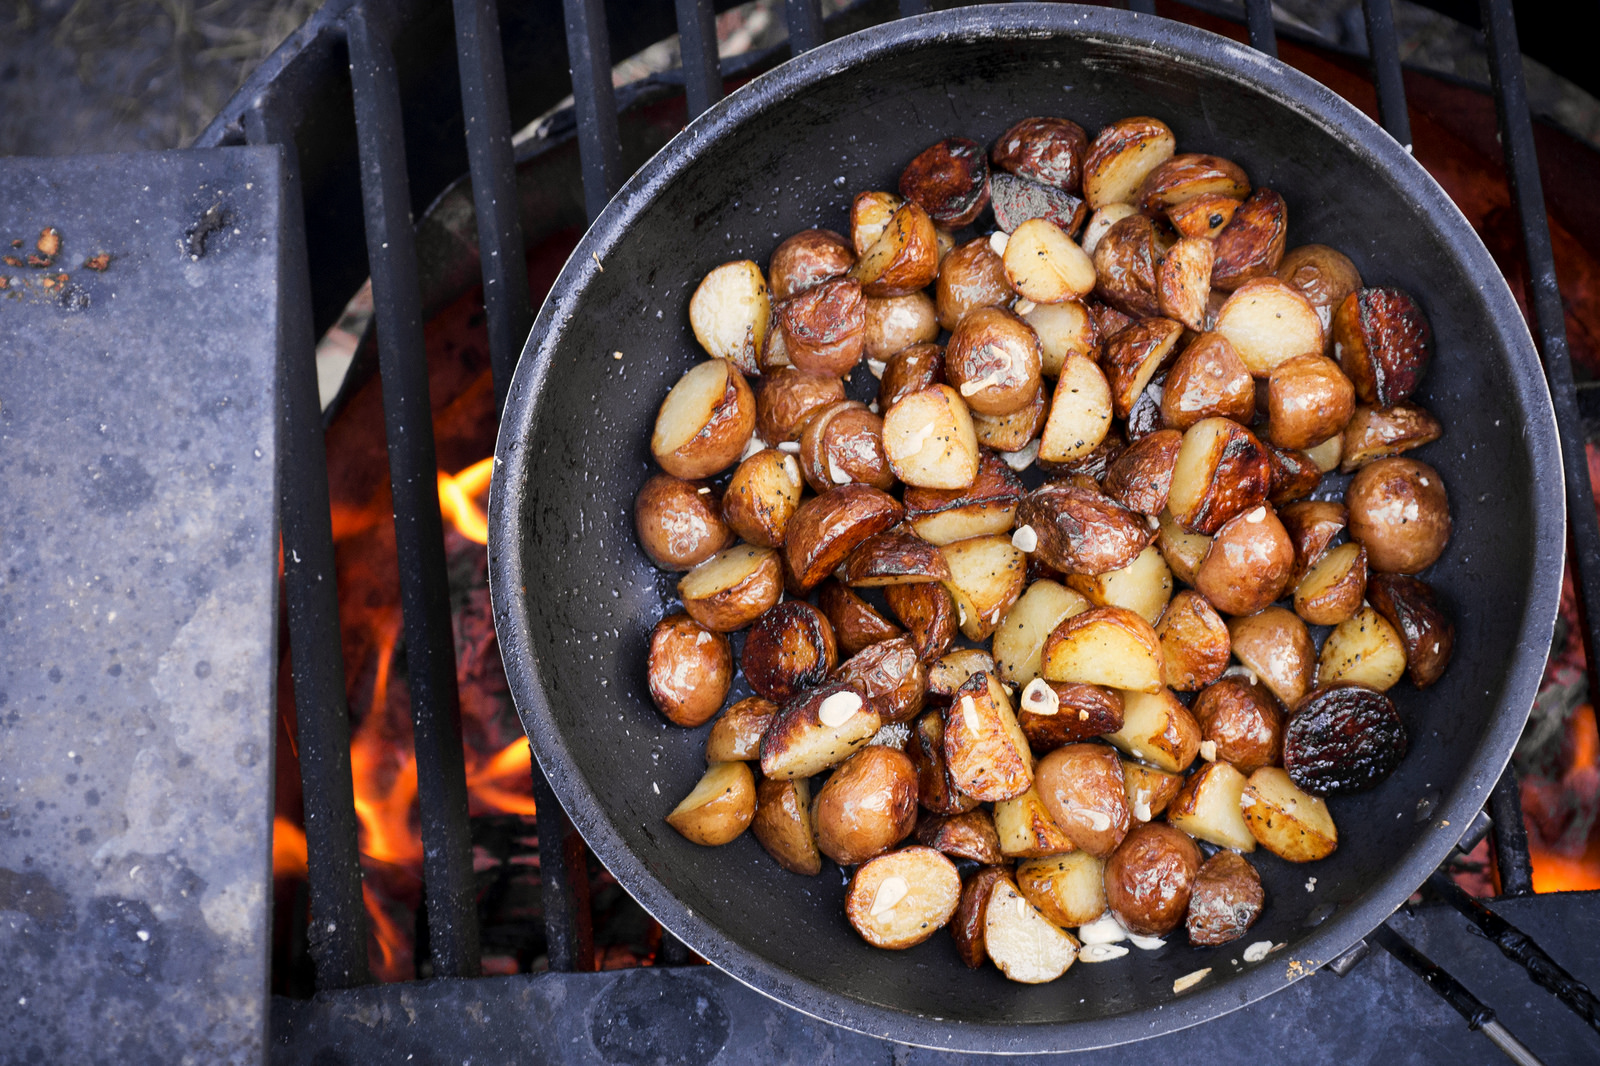 Oh yeah, hear that sizzle—frying potatoes in duck fat collected from a prior roast.